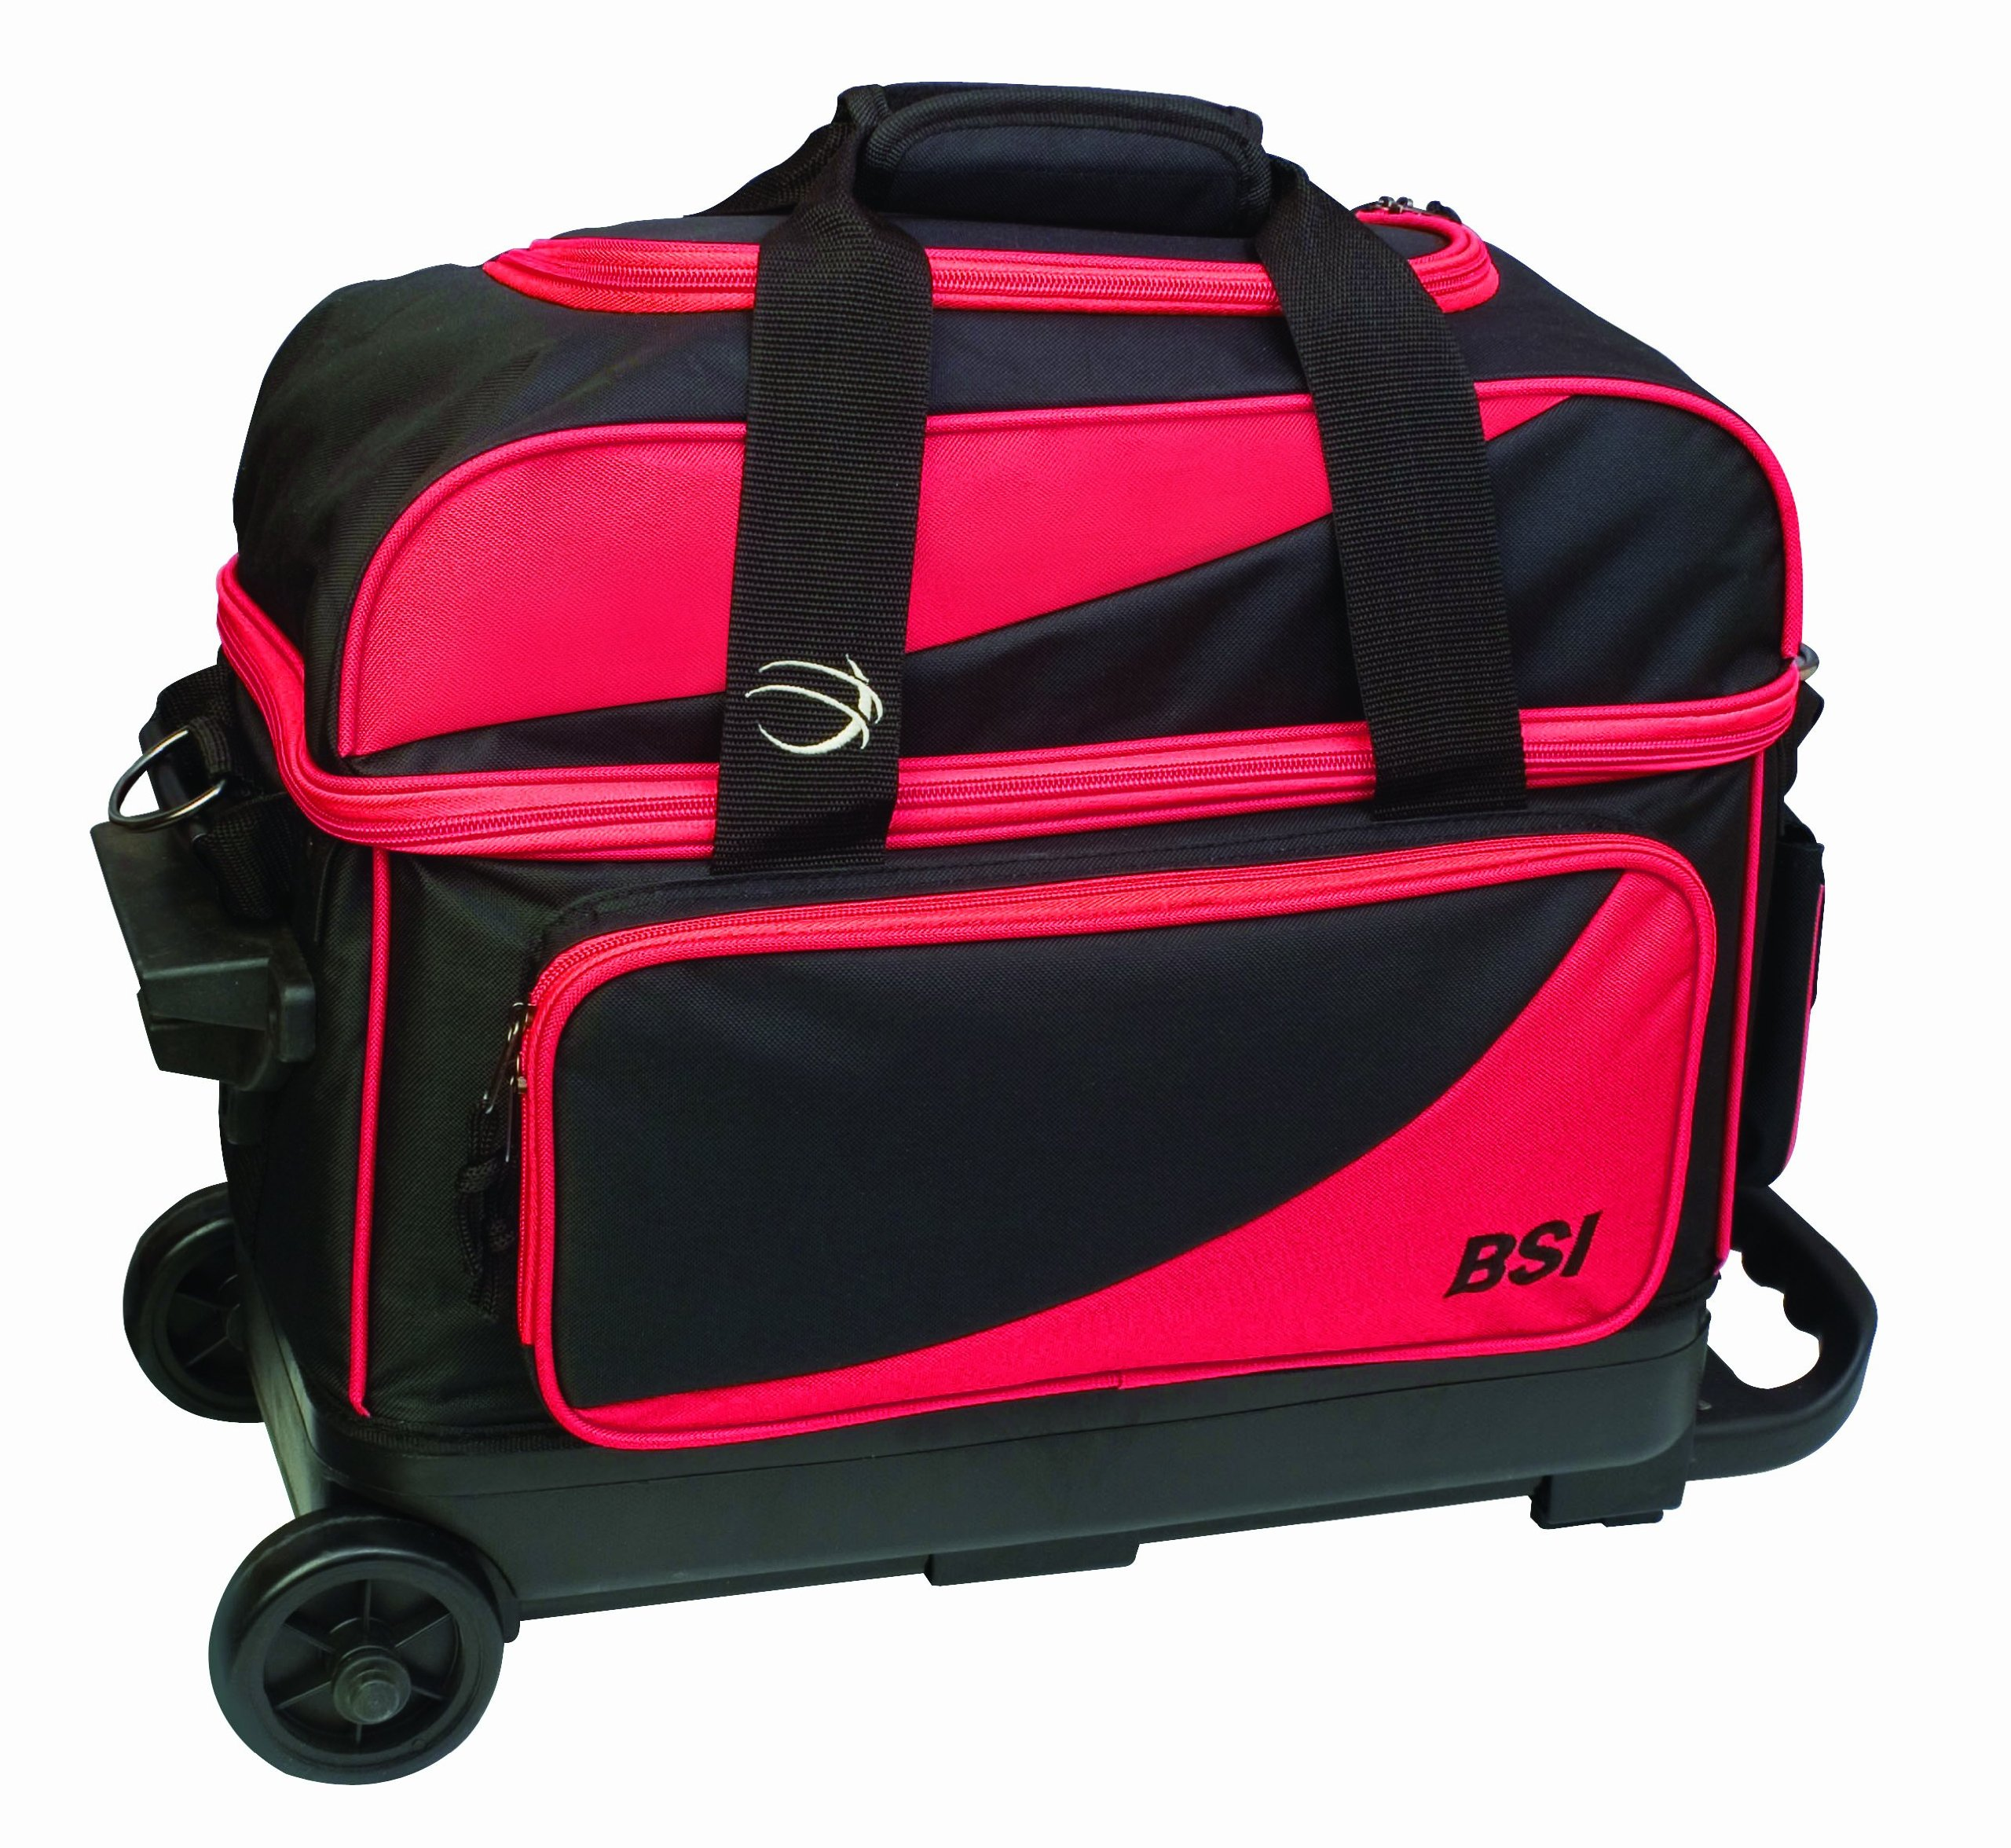 BSI Double Ball Roller Bowling Bag, Black/Red